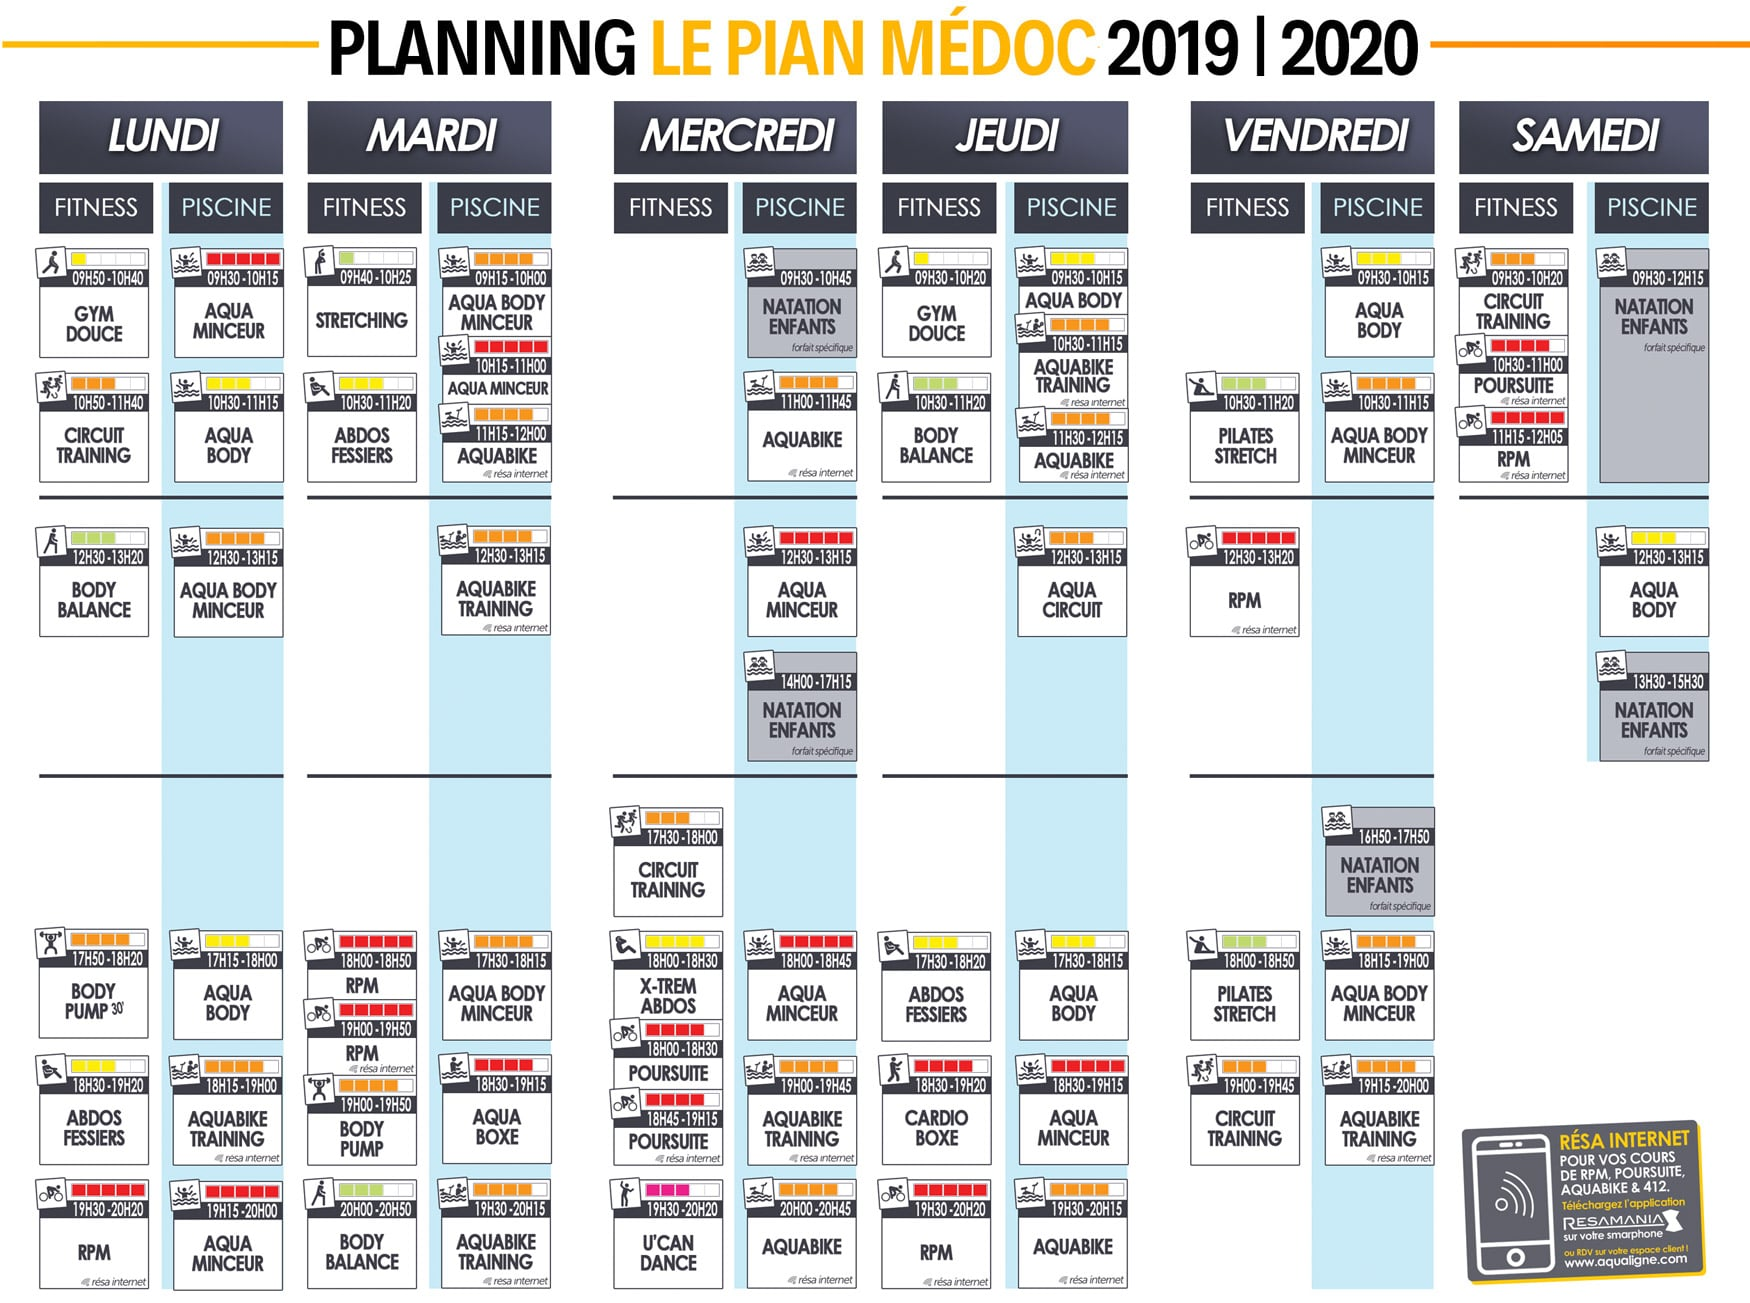 LE-PIAN-MEDOC-Planning-19-20